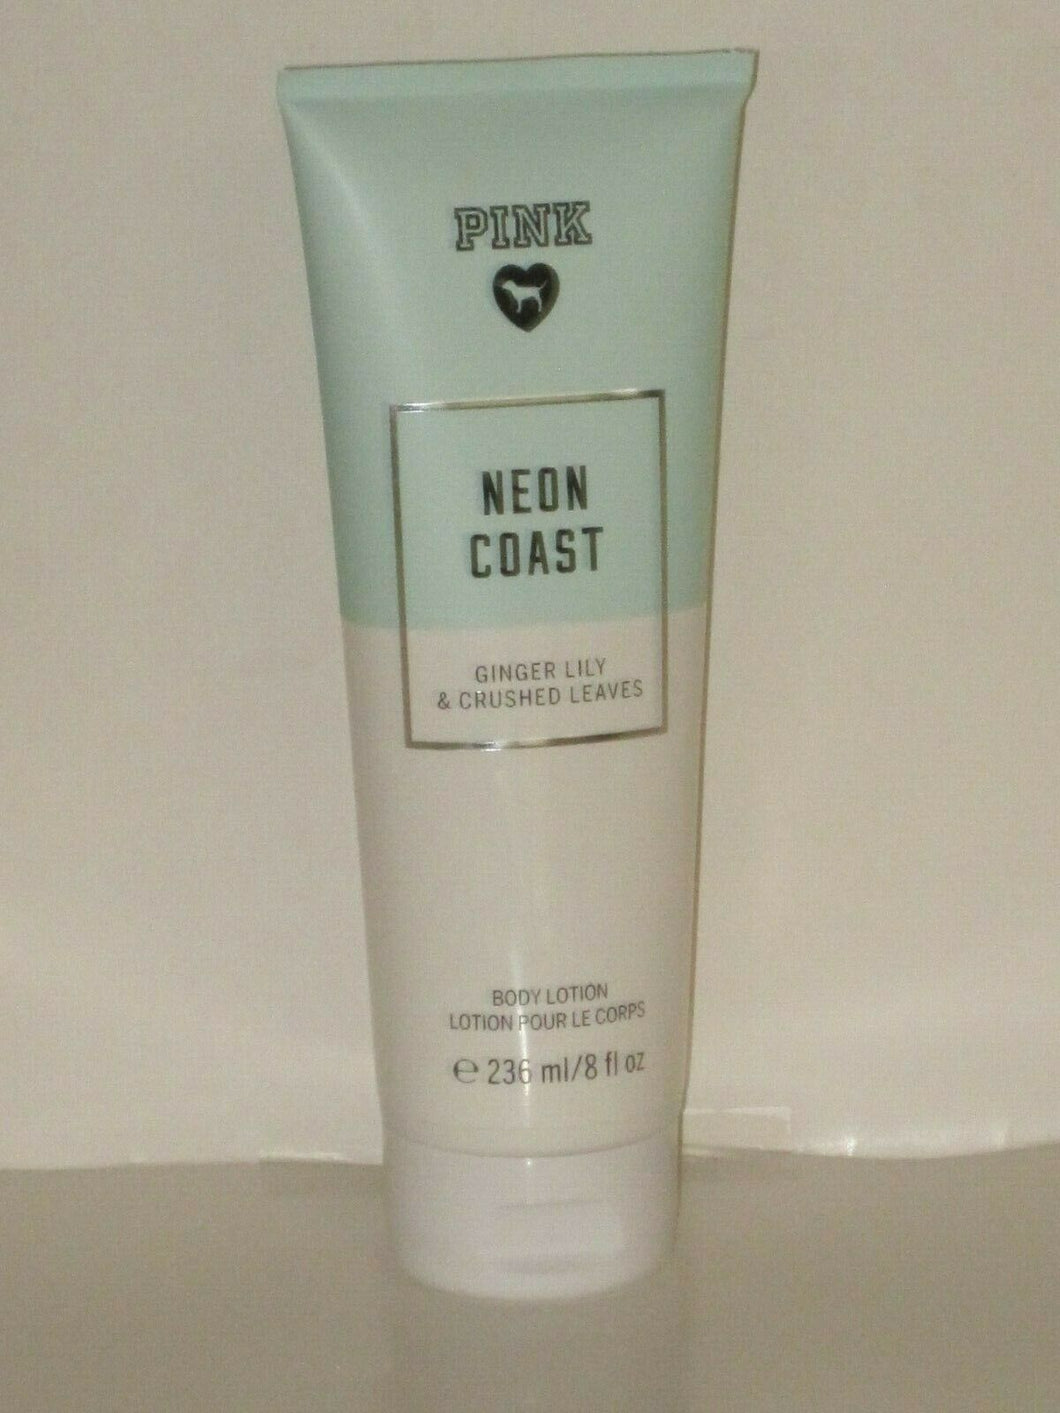 VICTORIA'S SECRET PINK NEON COAST (GINGER LILY & LEAVES) BODY LOTION 236ml NEW